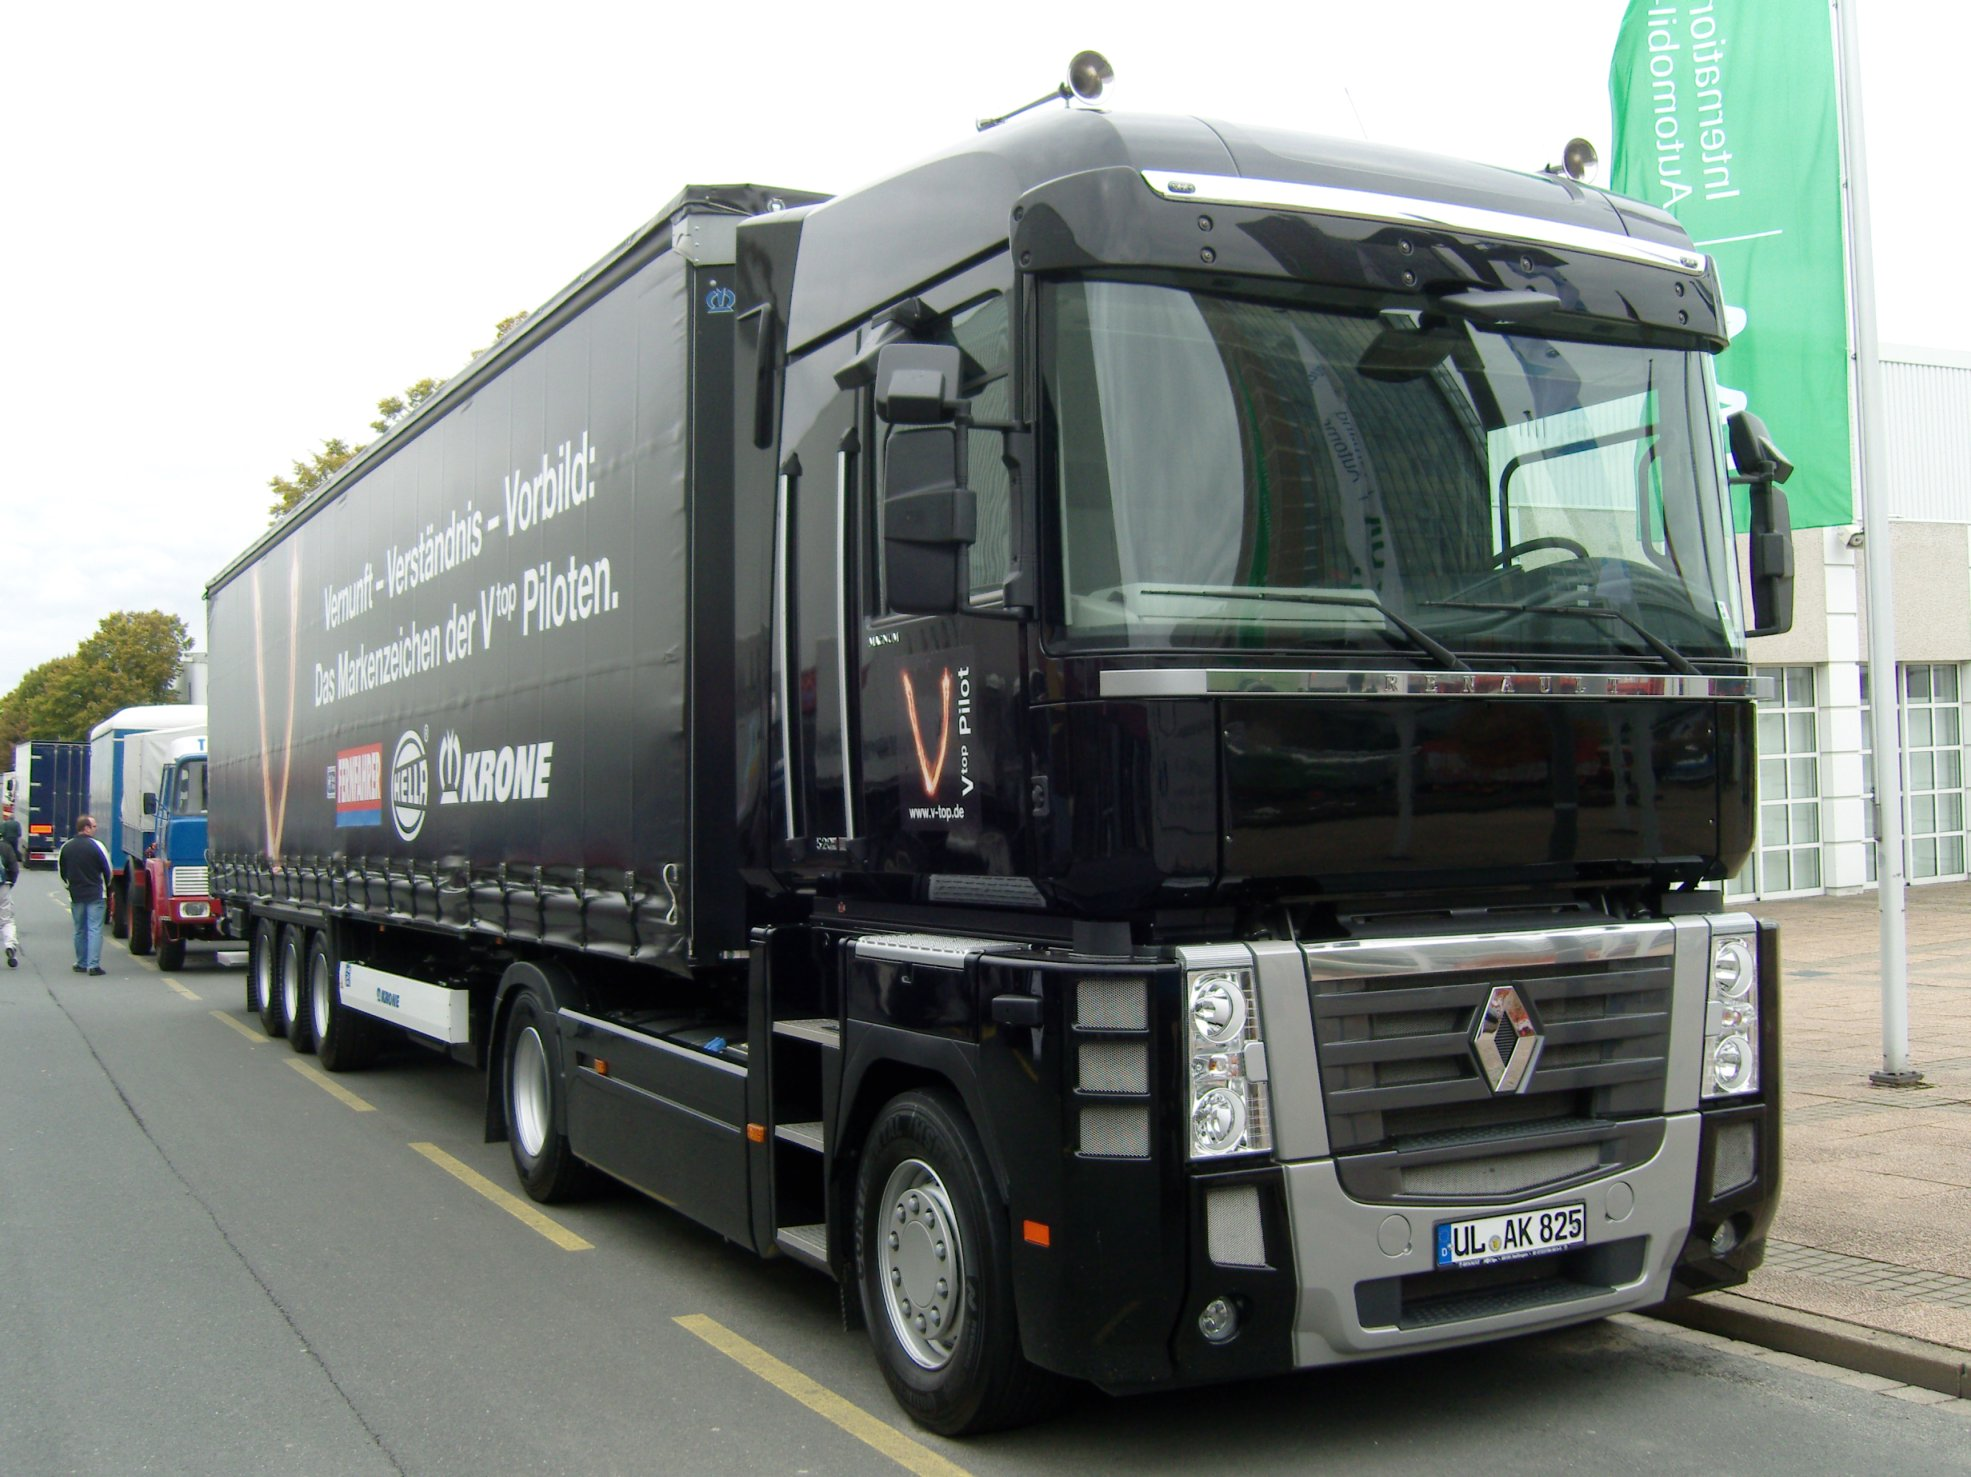 Renault Magnum 520 ... | Flickr - Photo Sharing!